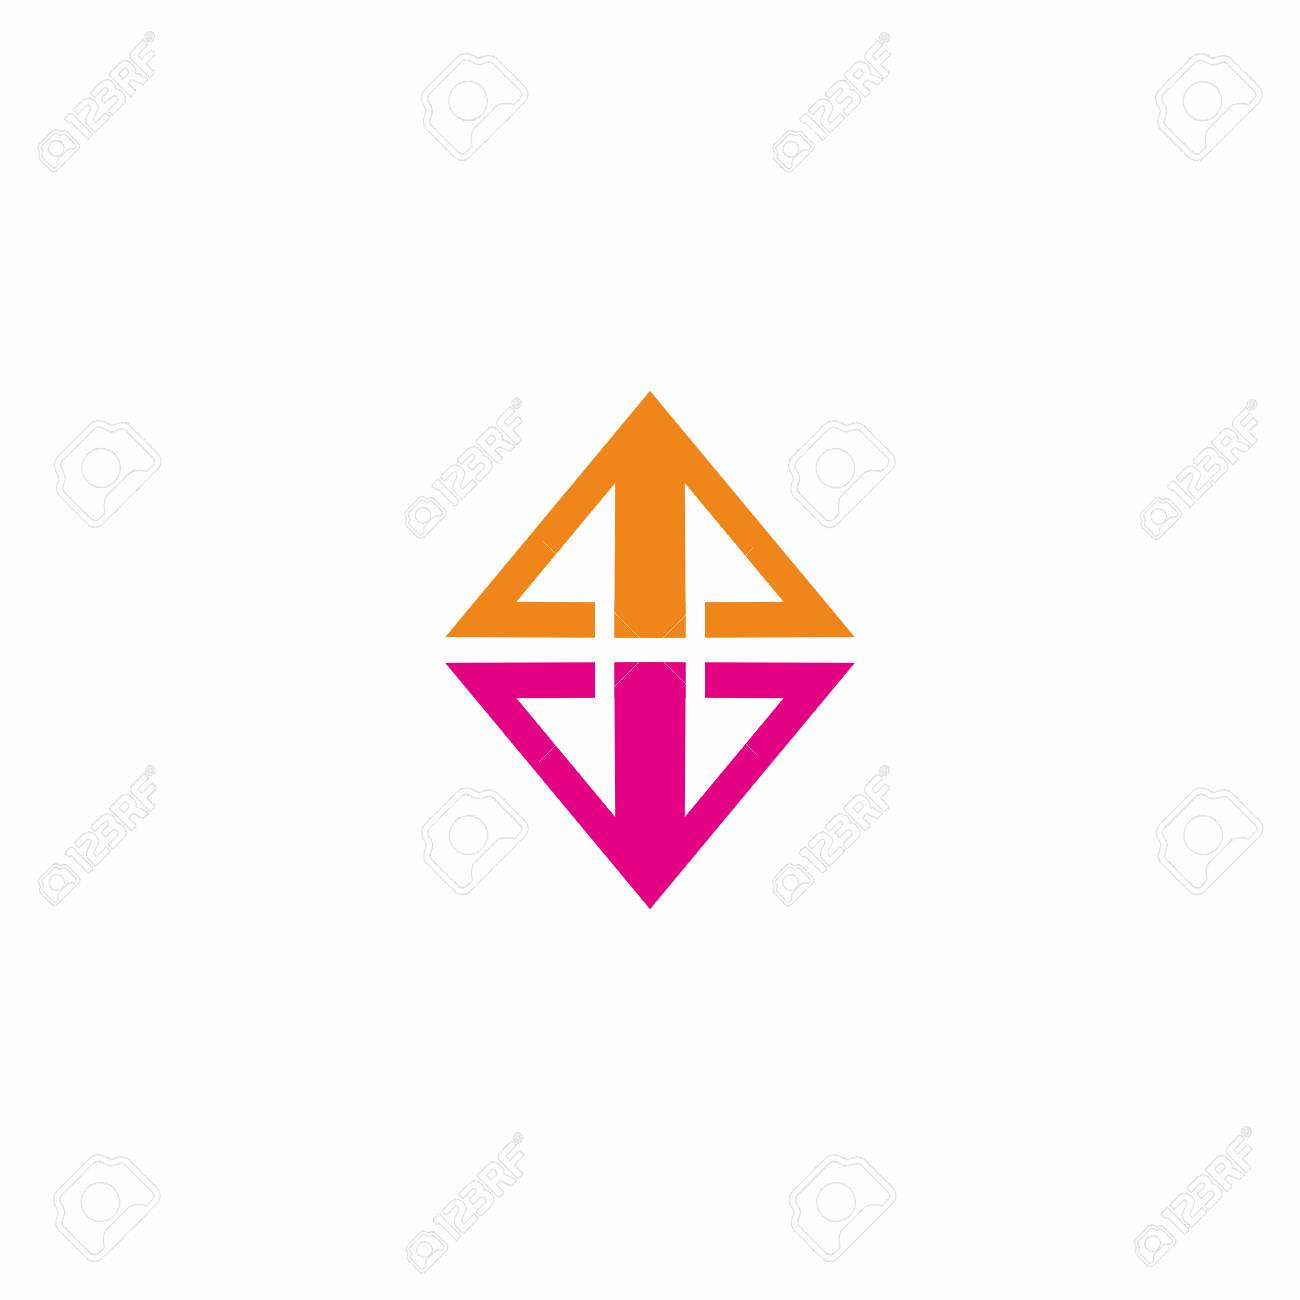 triangle and inverted pyramid in isolated background logo vector